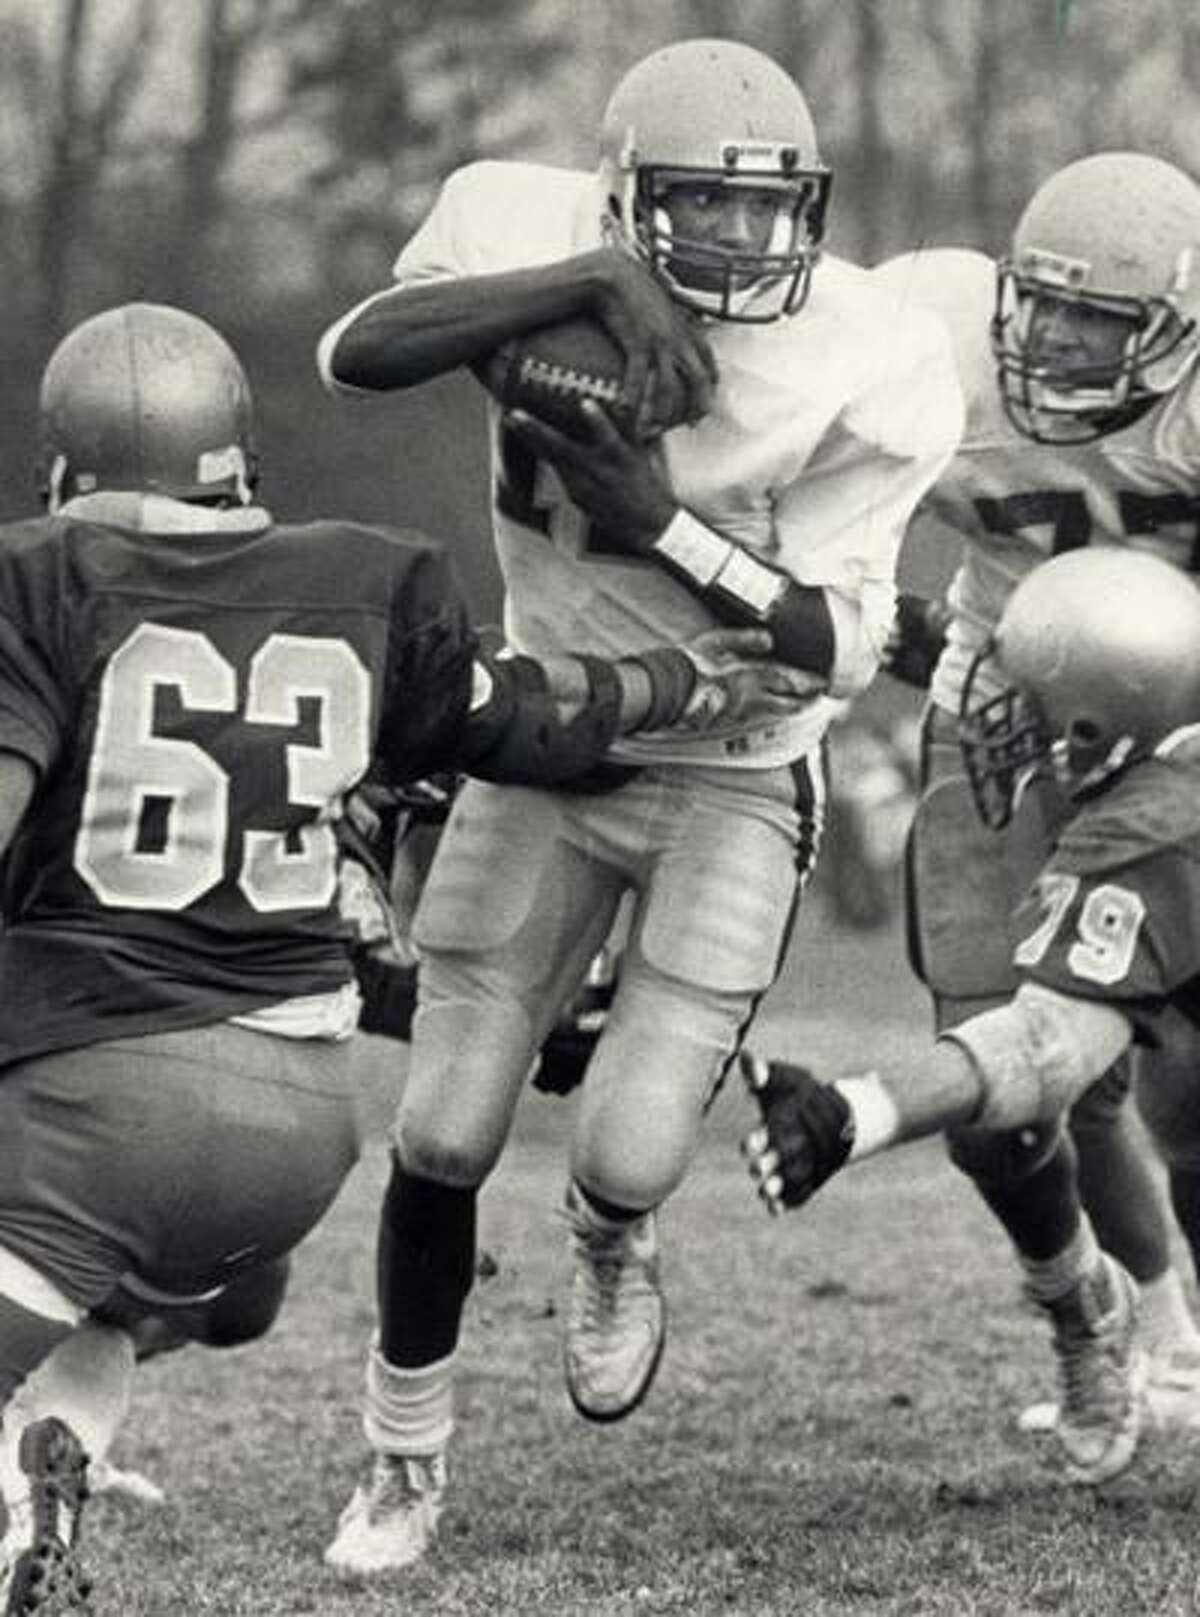 Qb Scott Burrell playing football during career at Hamden high School.